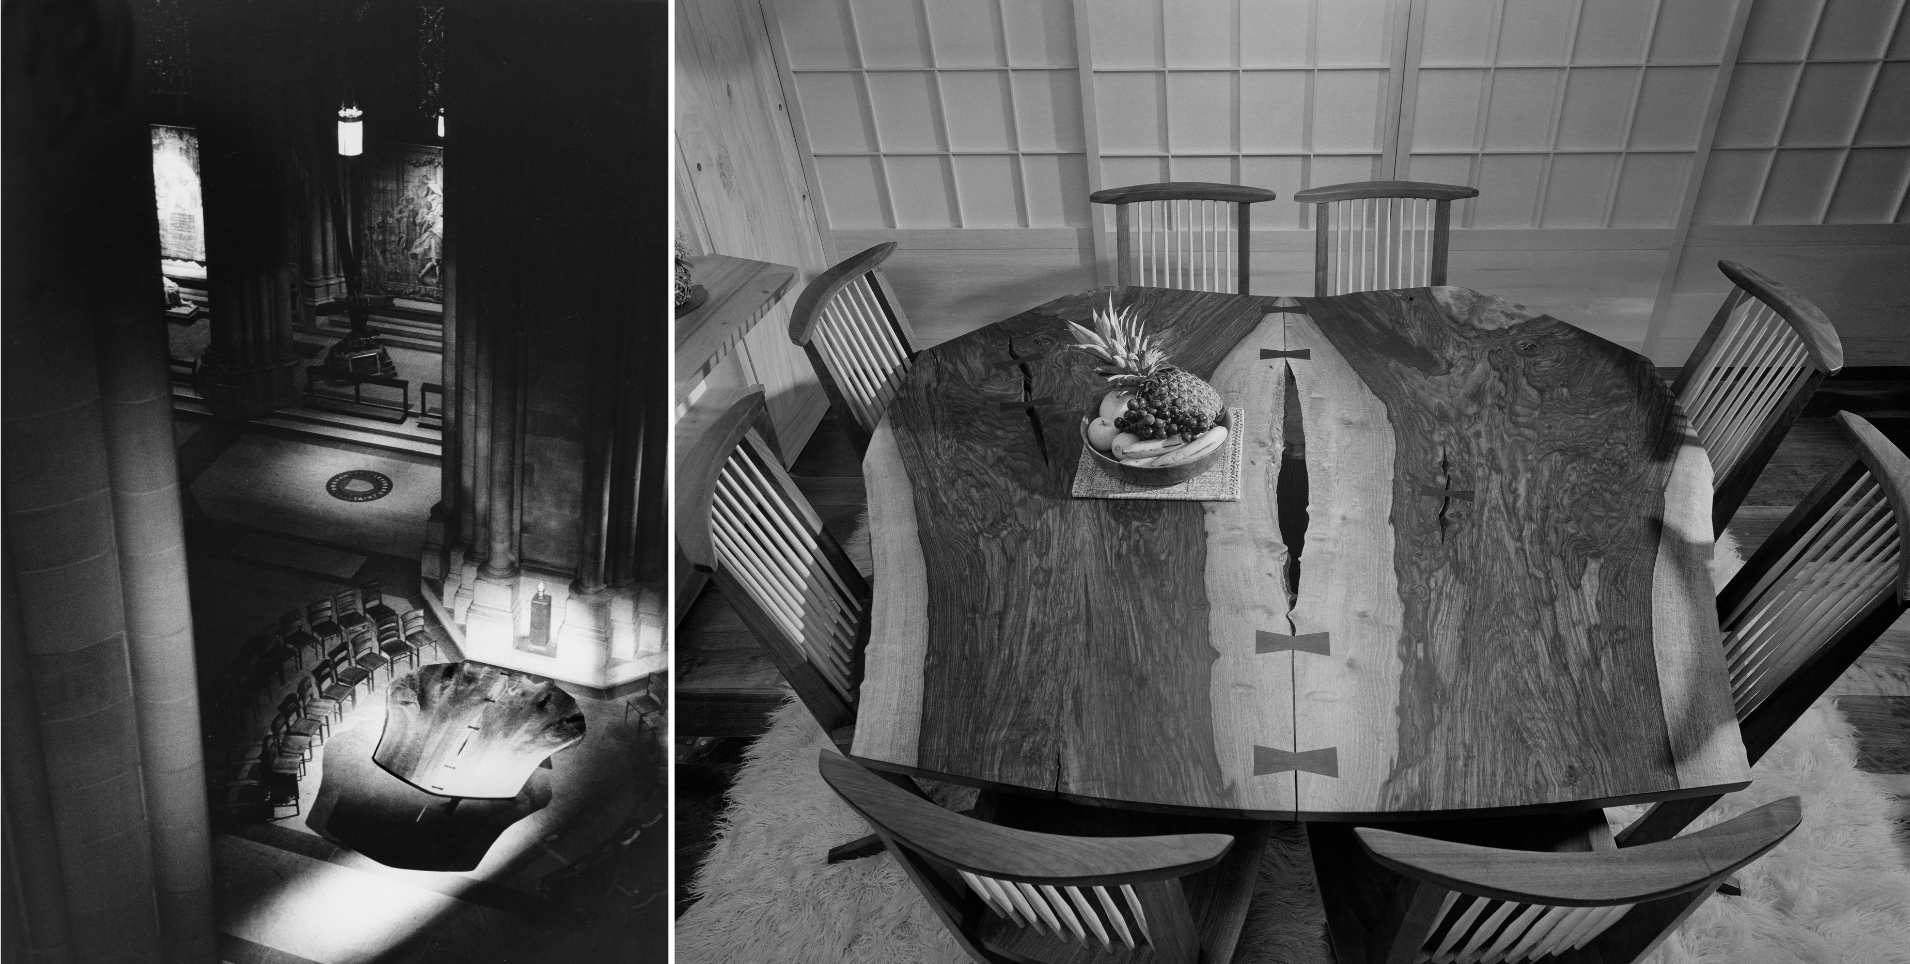 Nakashima's famed Peace Altar for the Cathedral of St John The Divine in New York City, installed 1986. Photo Mary Bloom | Nakashima's Book-Matched Sanso Table. Photos © Ezra Stoller Archive - Esto; courtesy of George Nakashima Woodworkers